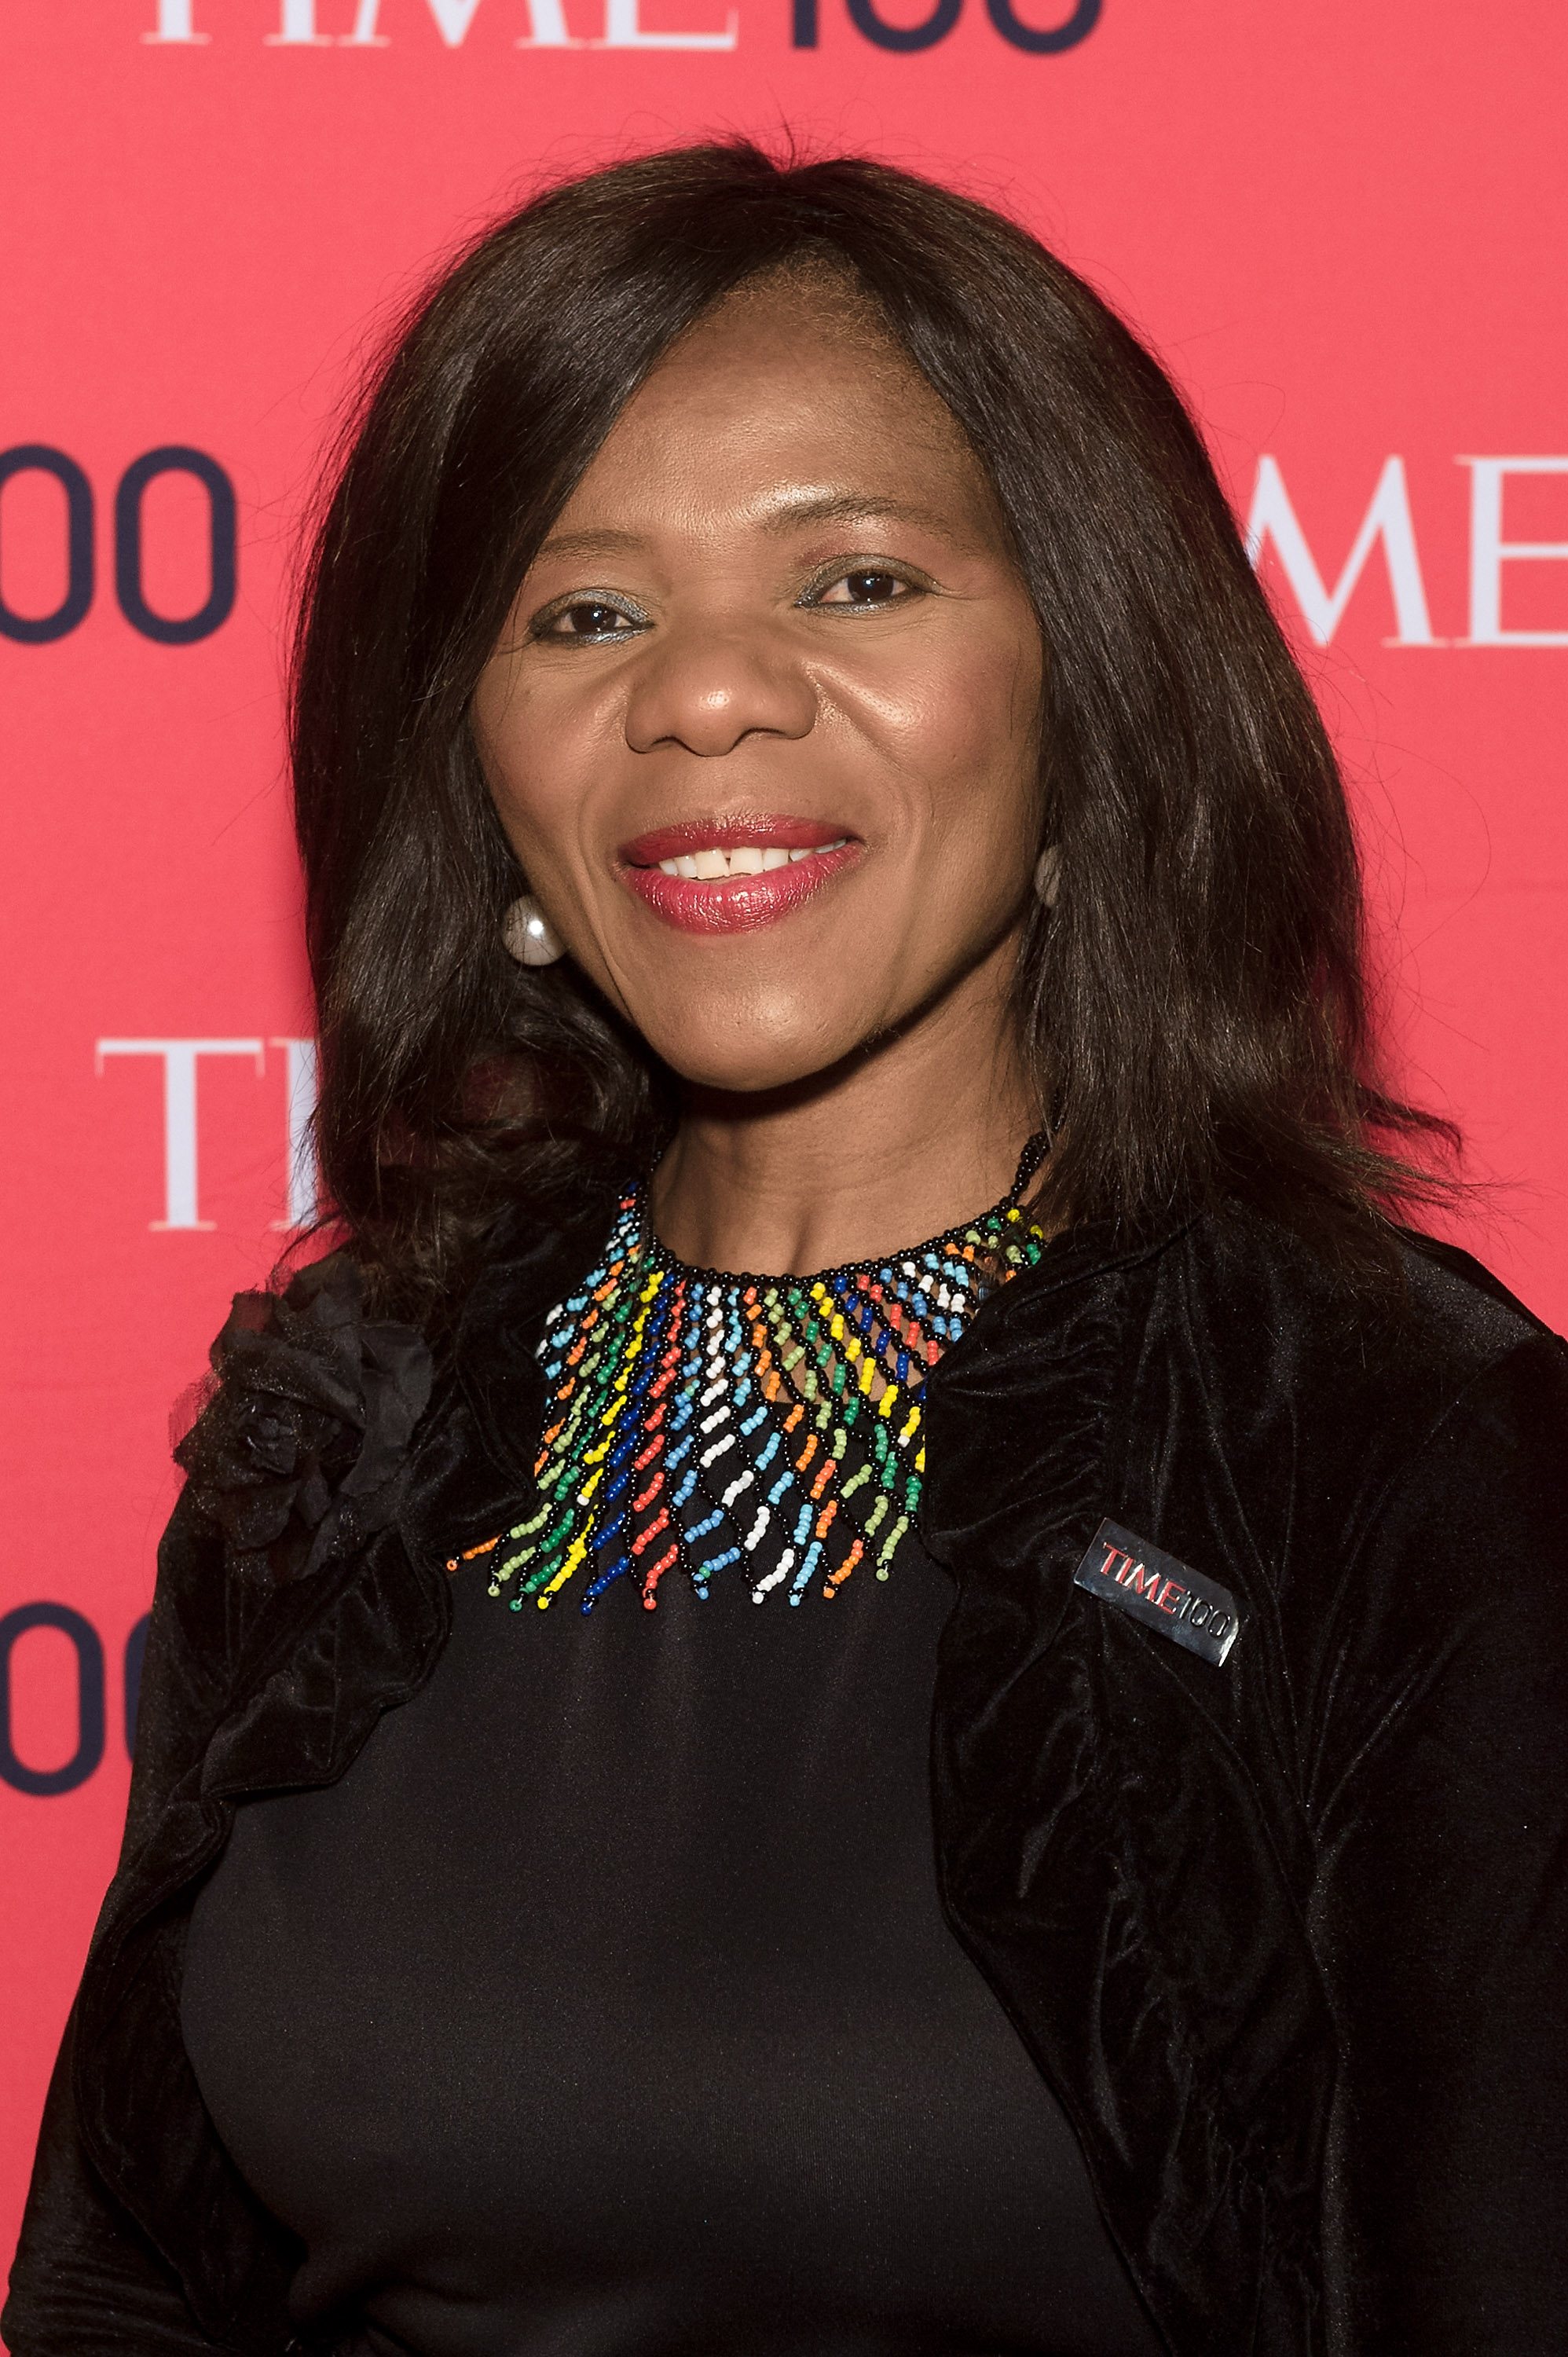 Thuli Madonsela attends the 2014 Time 100 Gala at Frederick P. Rose Hall, Jazz at Lincoln Center, on April 29, 2014, in New York City